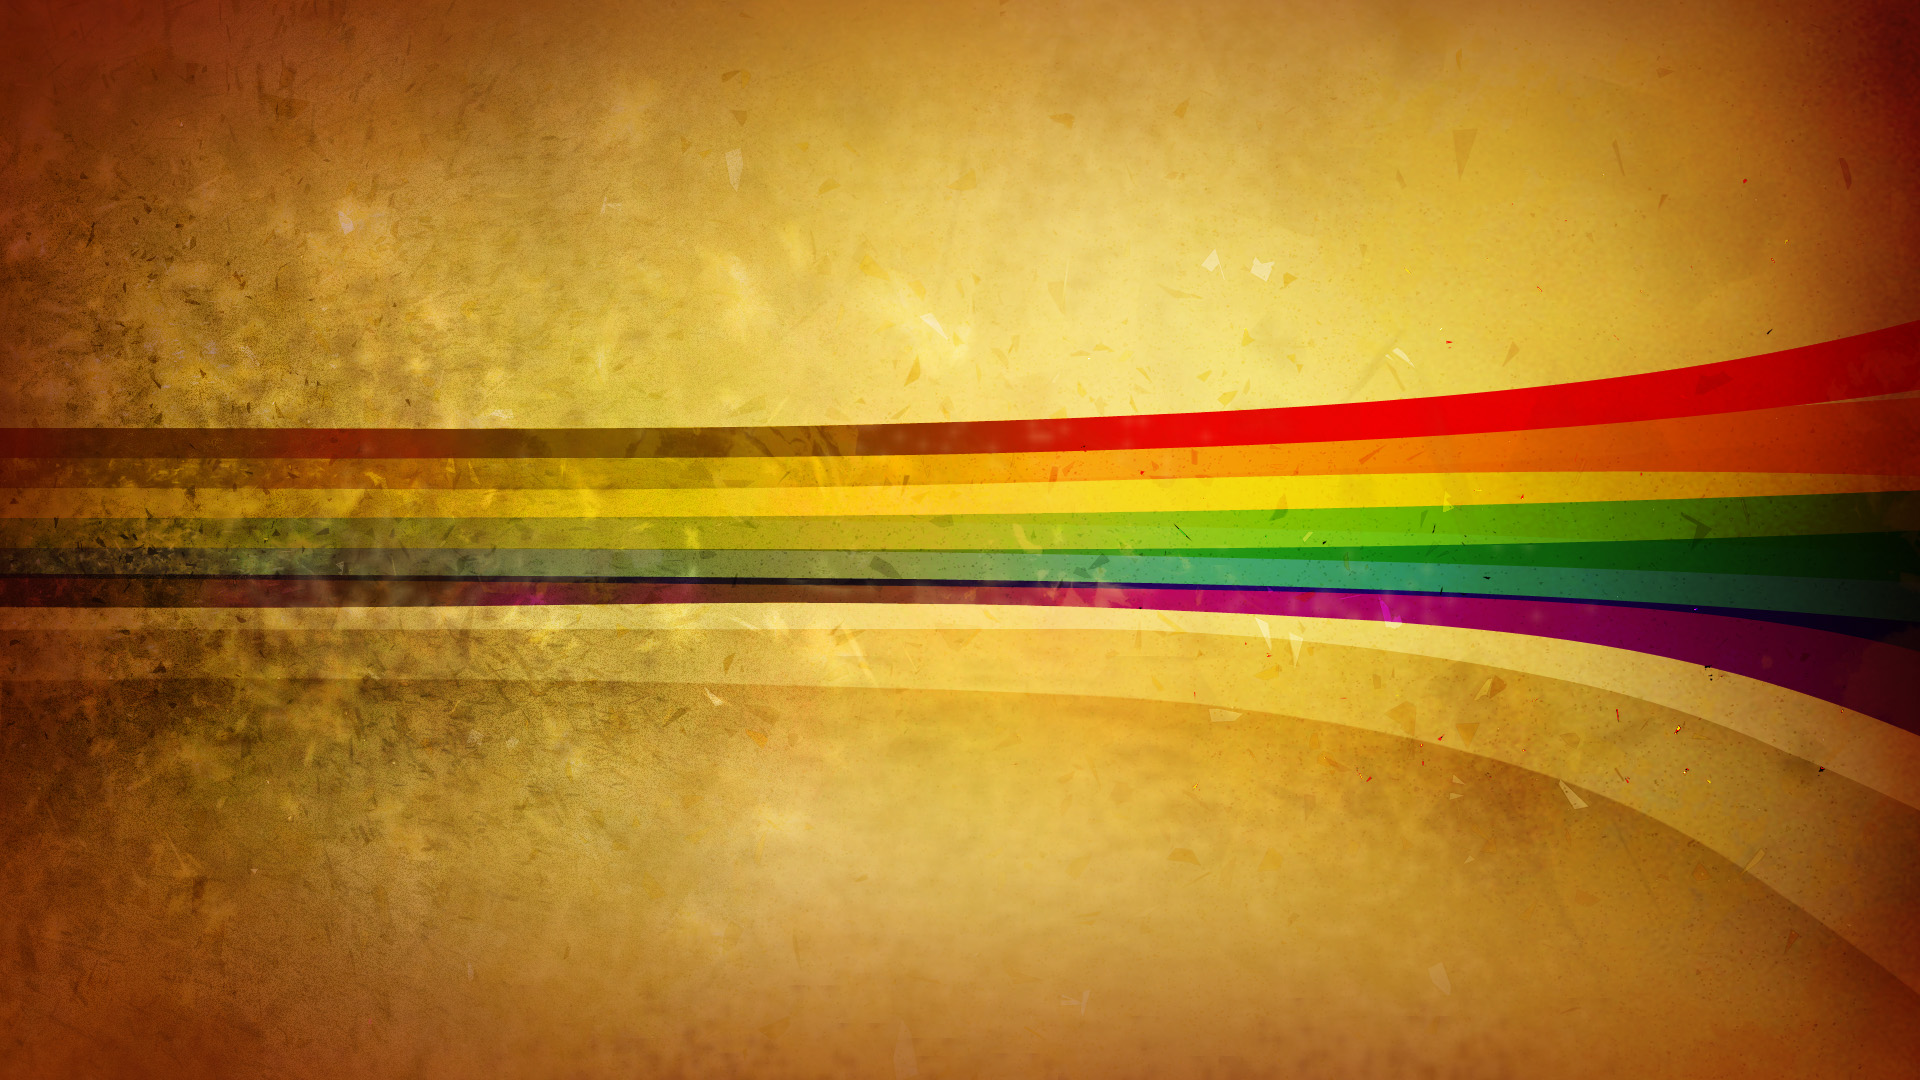 25 hd rainbow wallpapers for Retro wallpaper